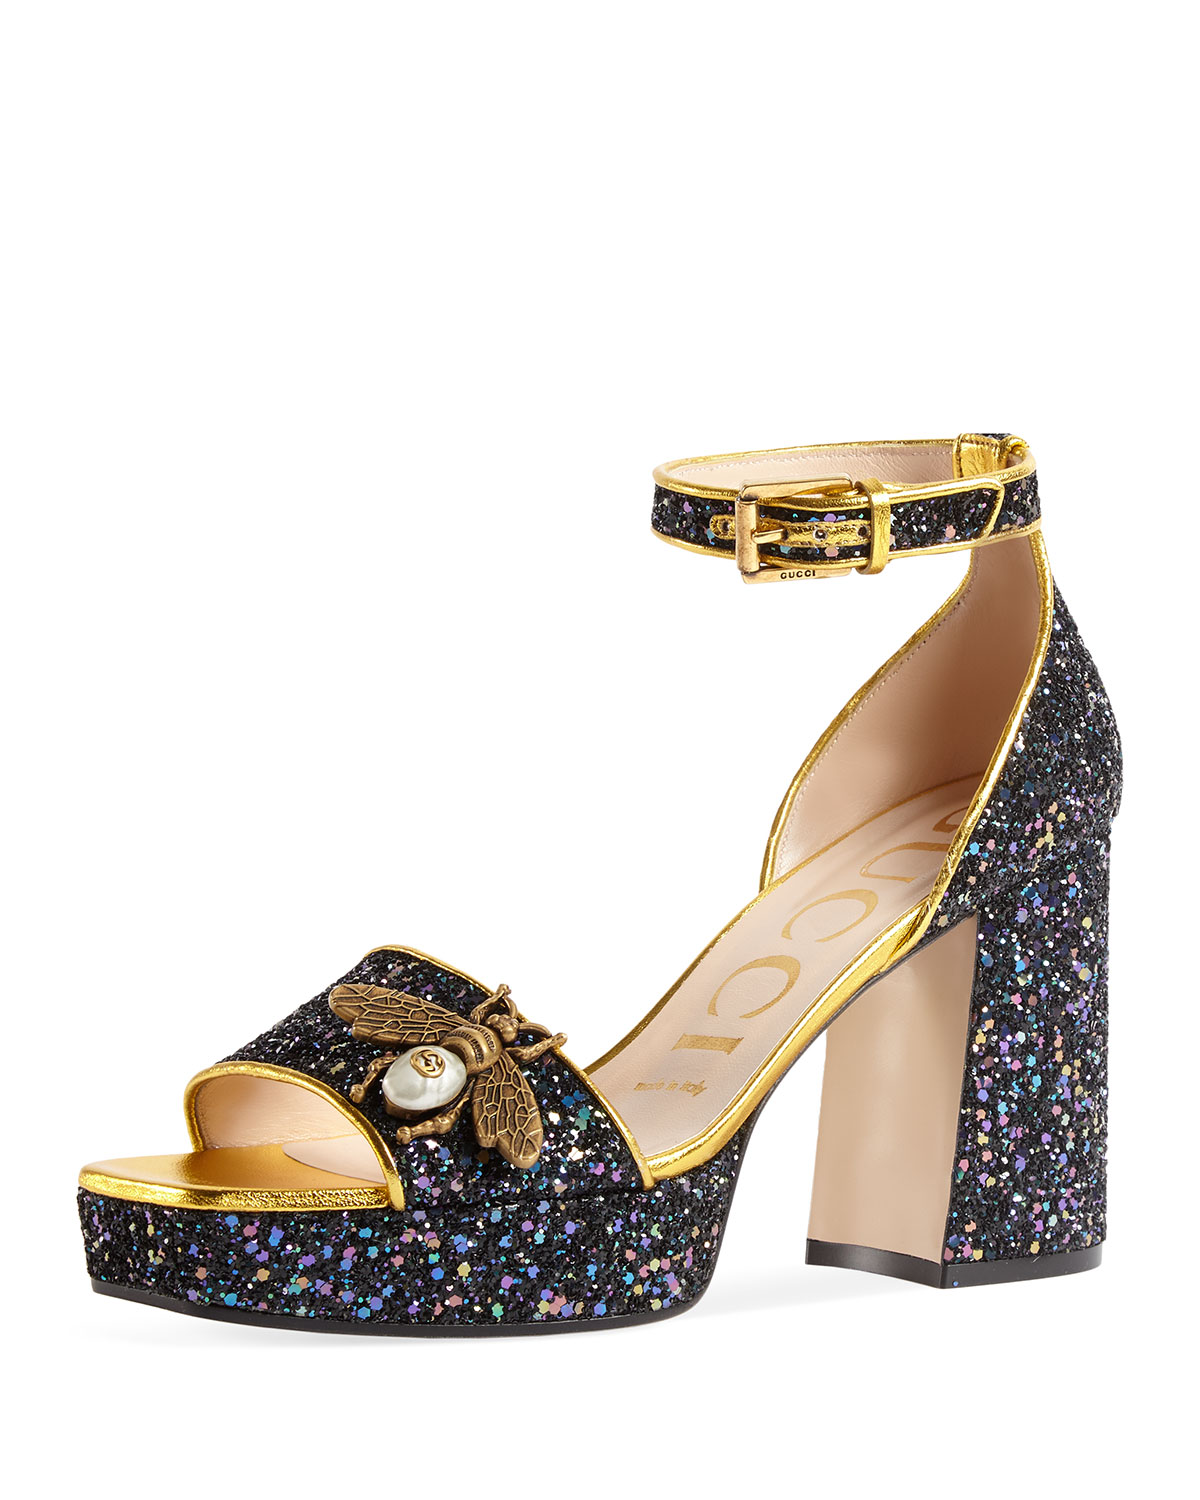 64e2c5a4b4a Gucci Soko Glitter Sandal with Bee Detail